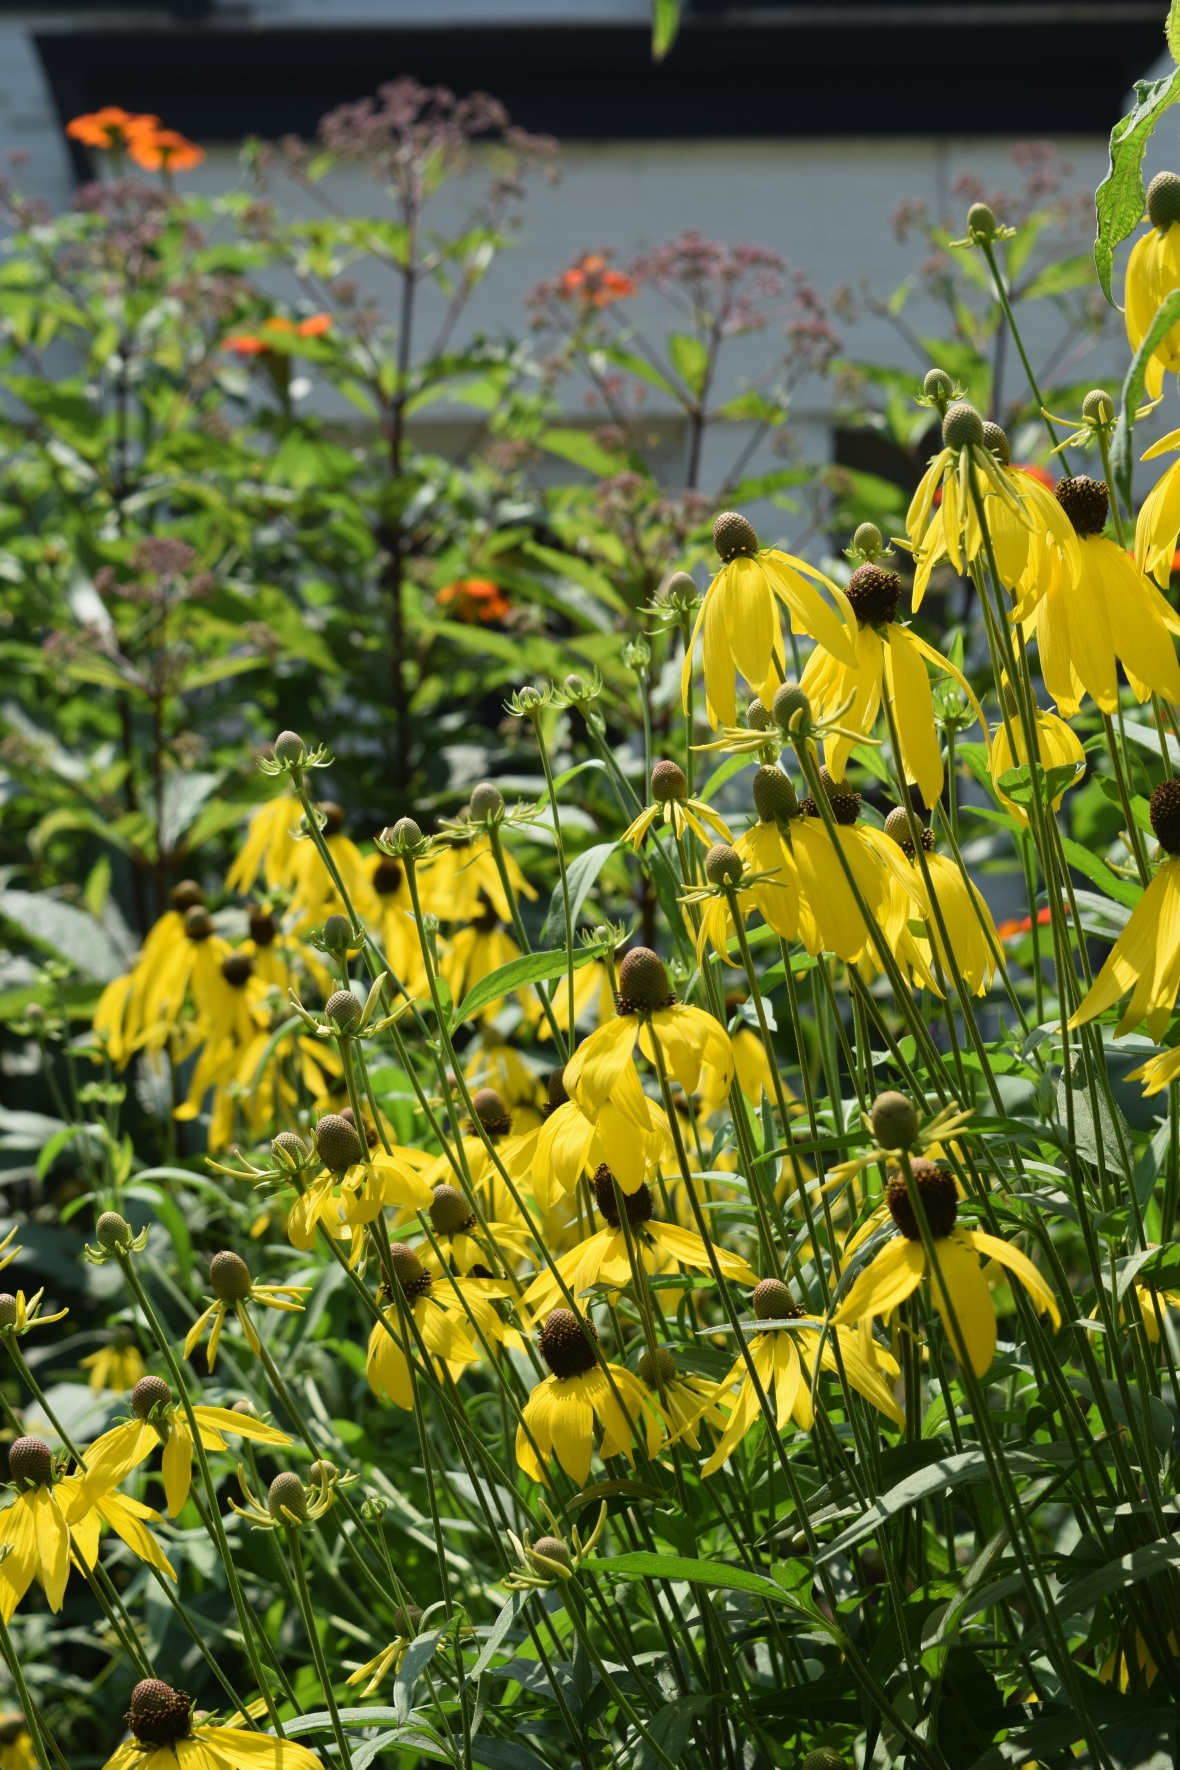 2014-08-02 12.08.40 yellow coneflower